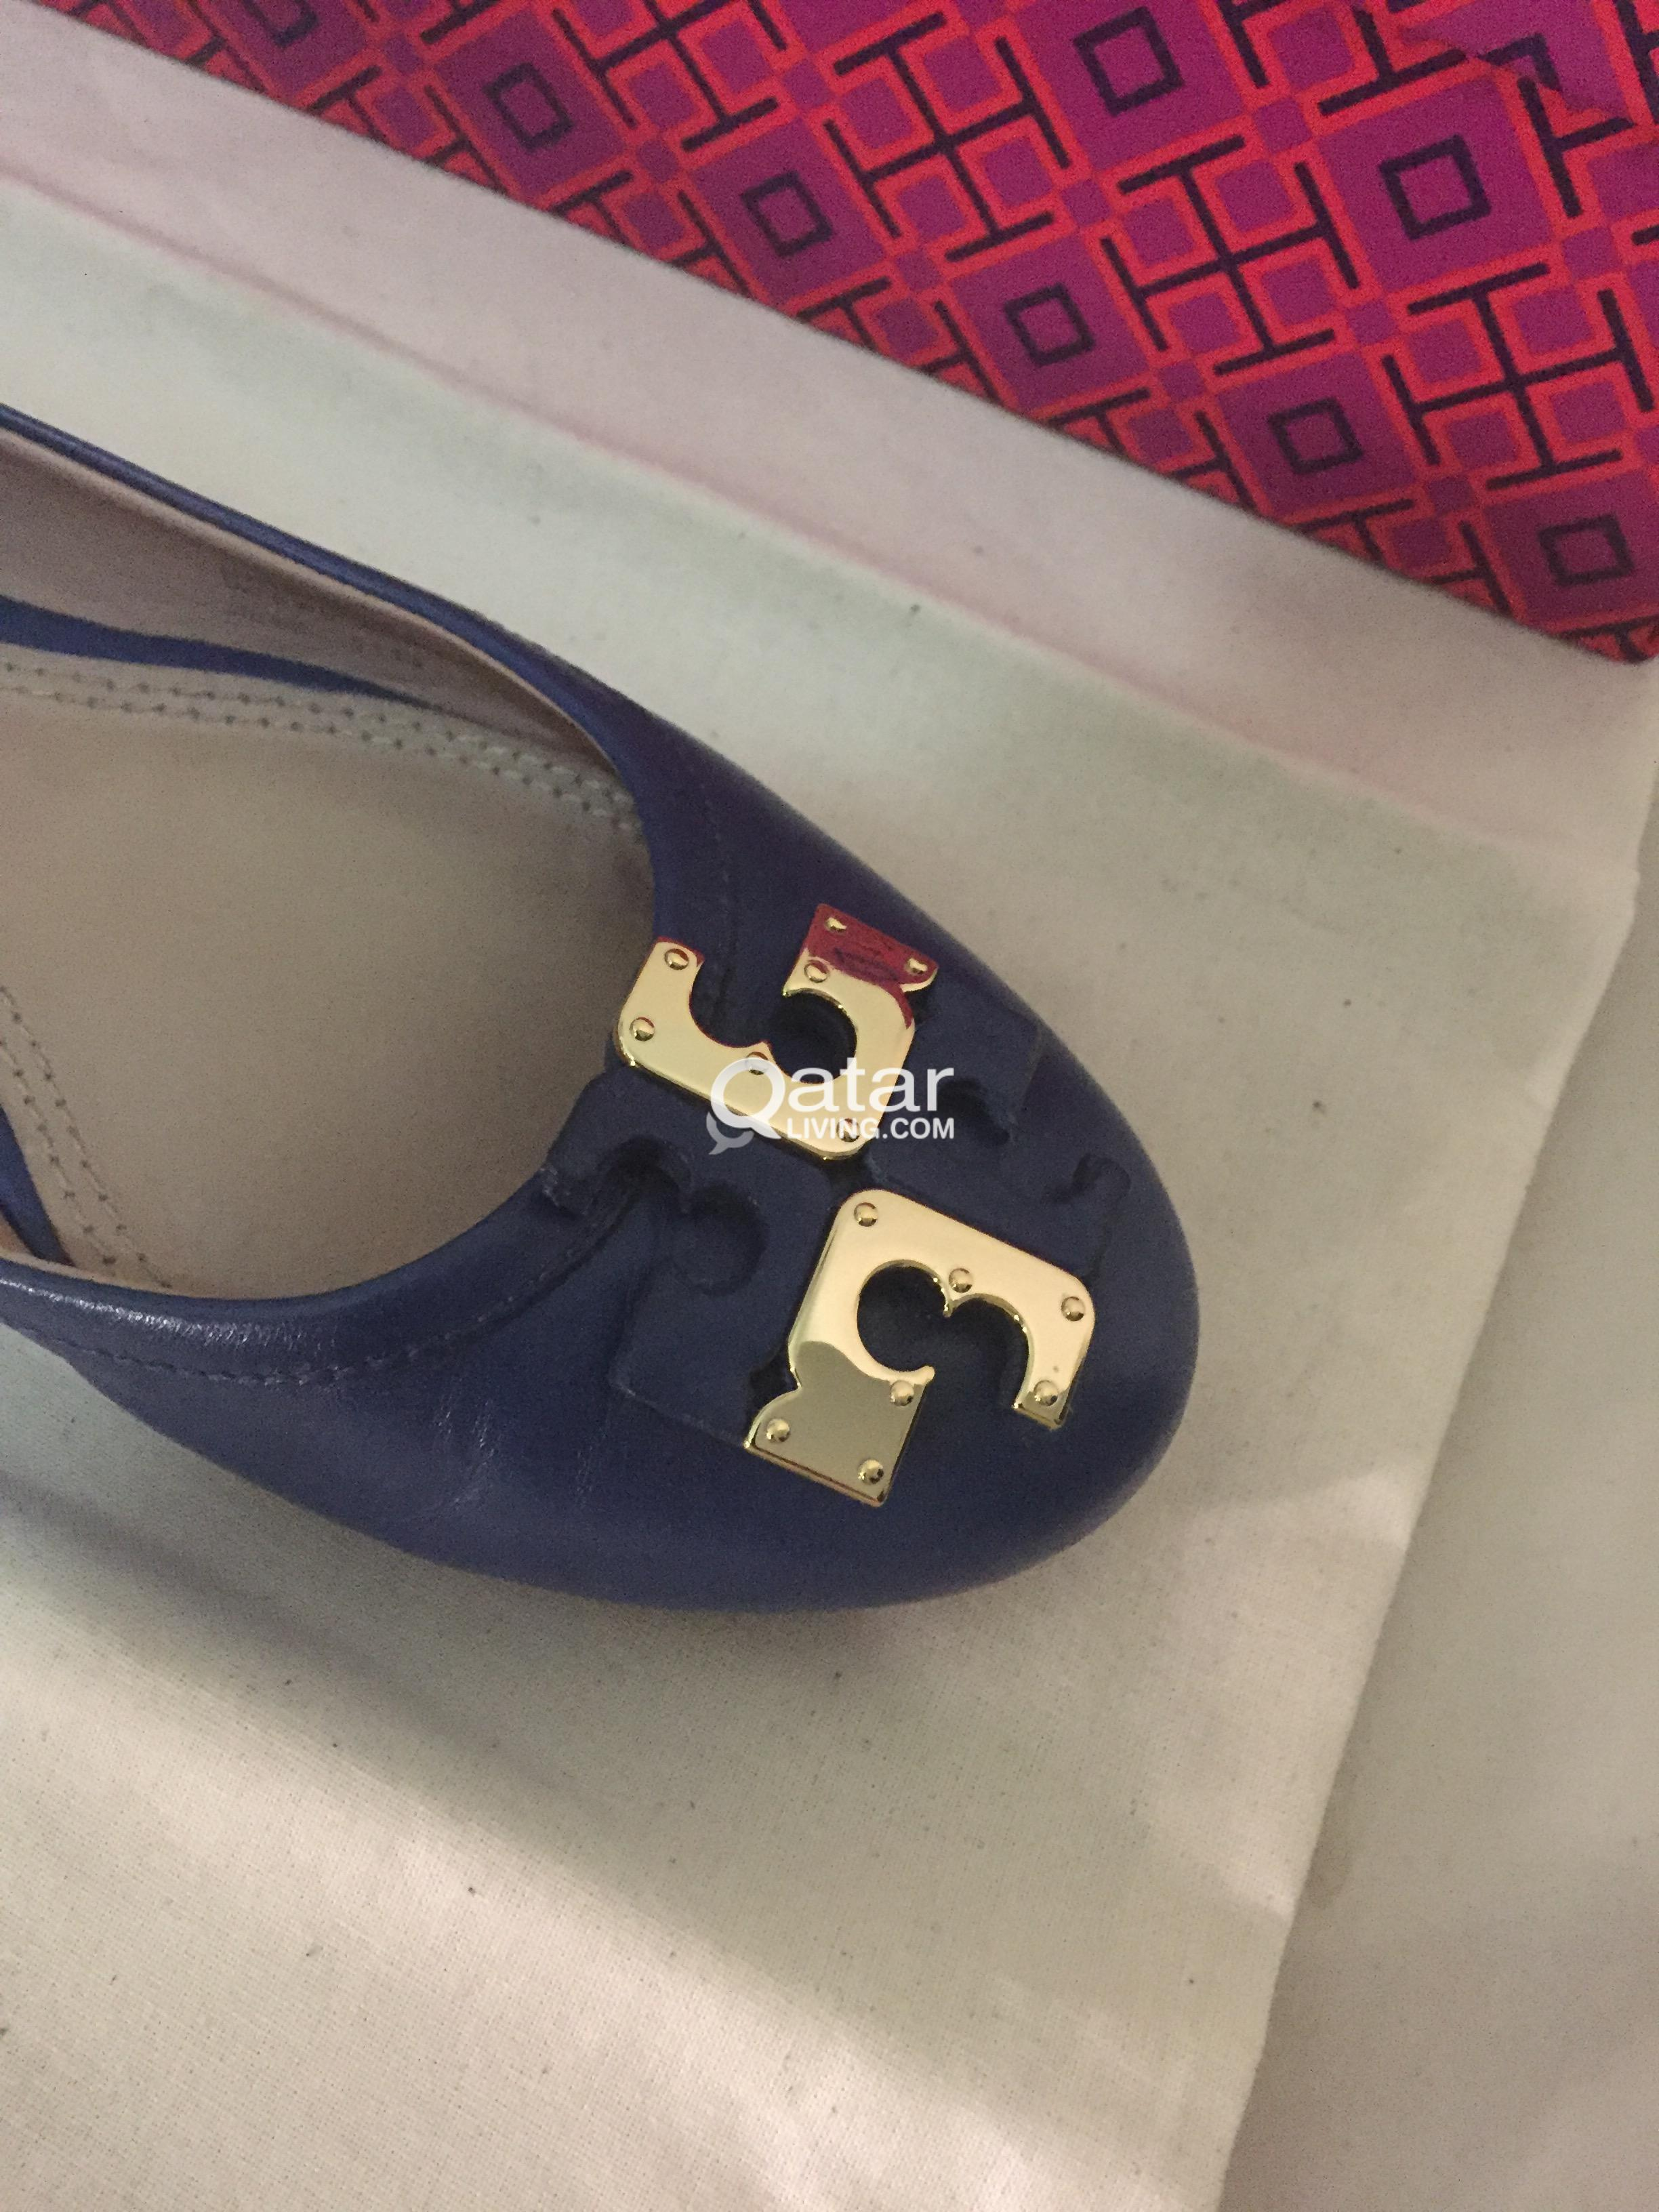 c00160cfe69c title · title · title · title · title · title · title. Information. Authentic  Tory Burch flat ...